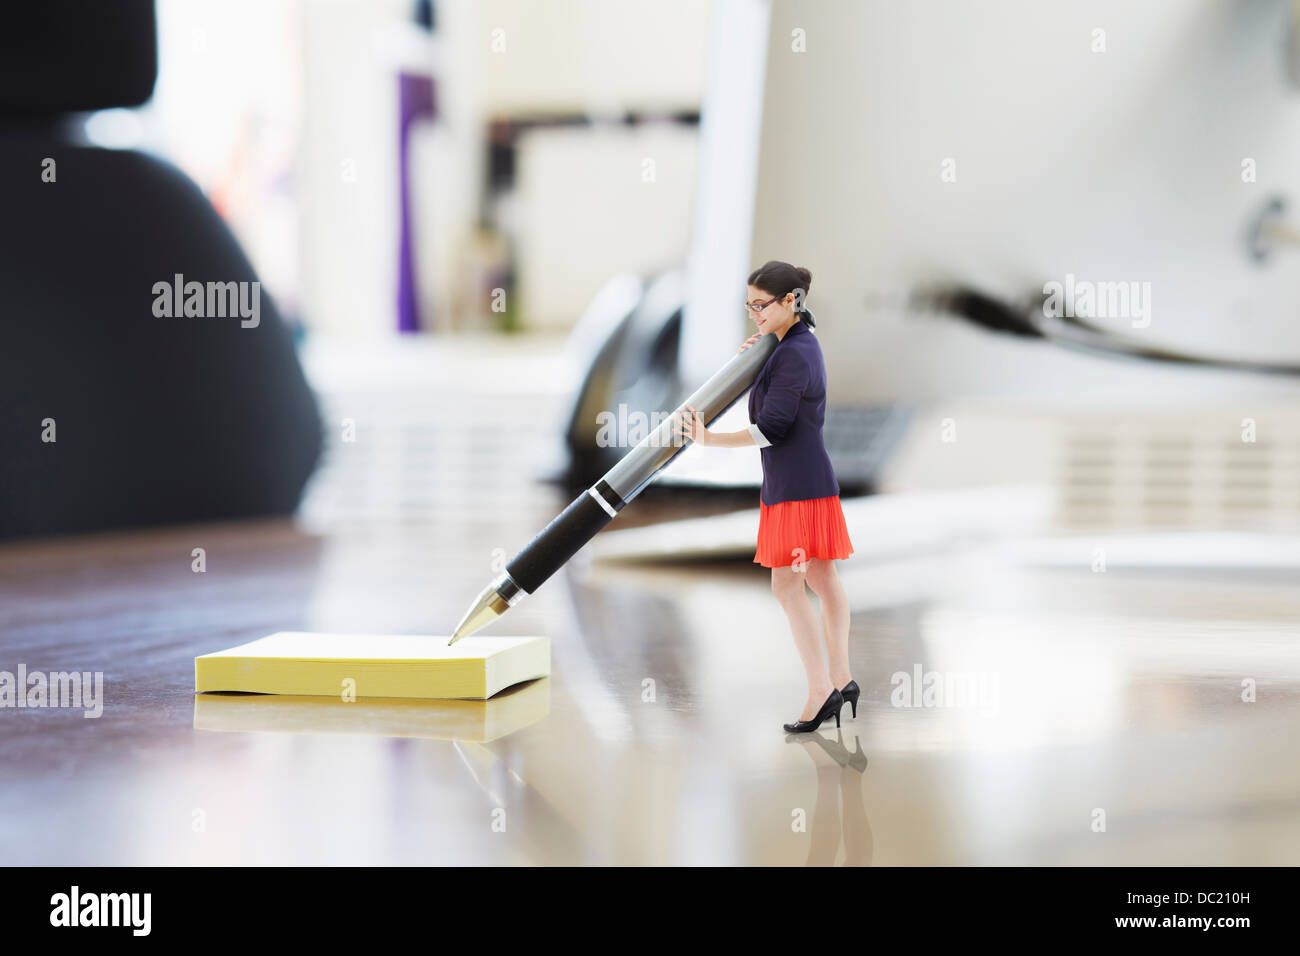 Businesswoman writing on large adhesive label on oversized desk - Stock Image